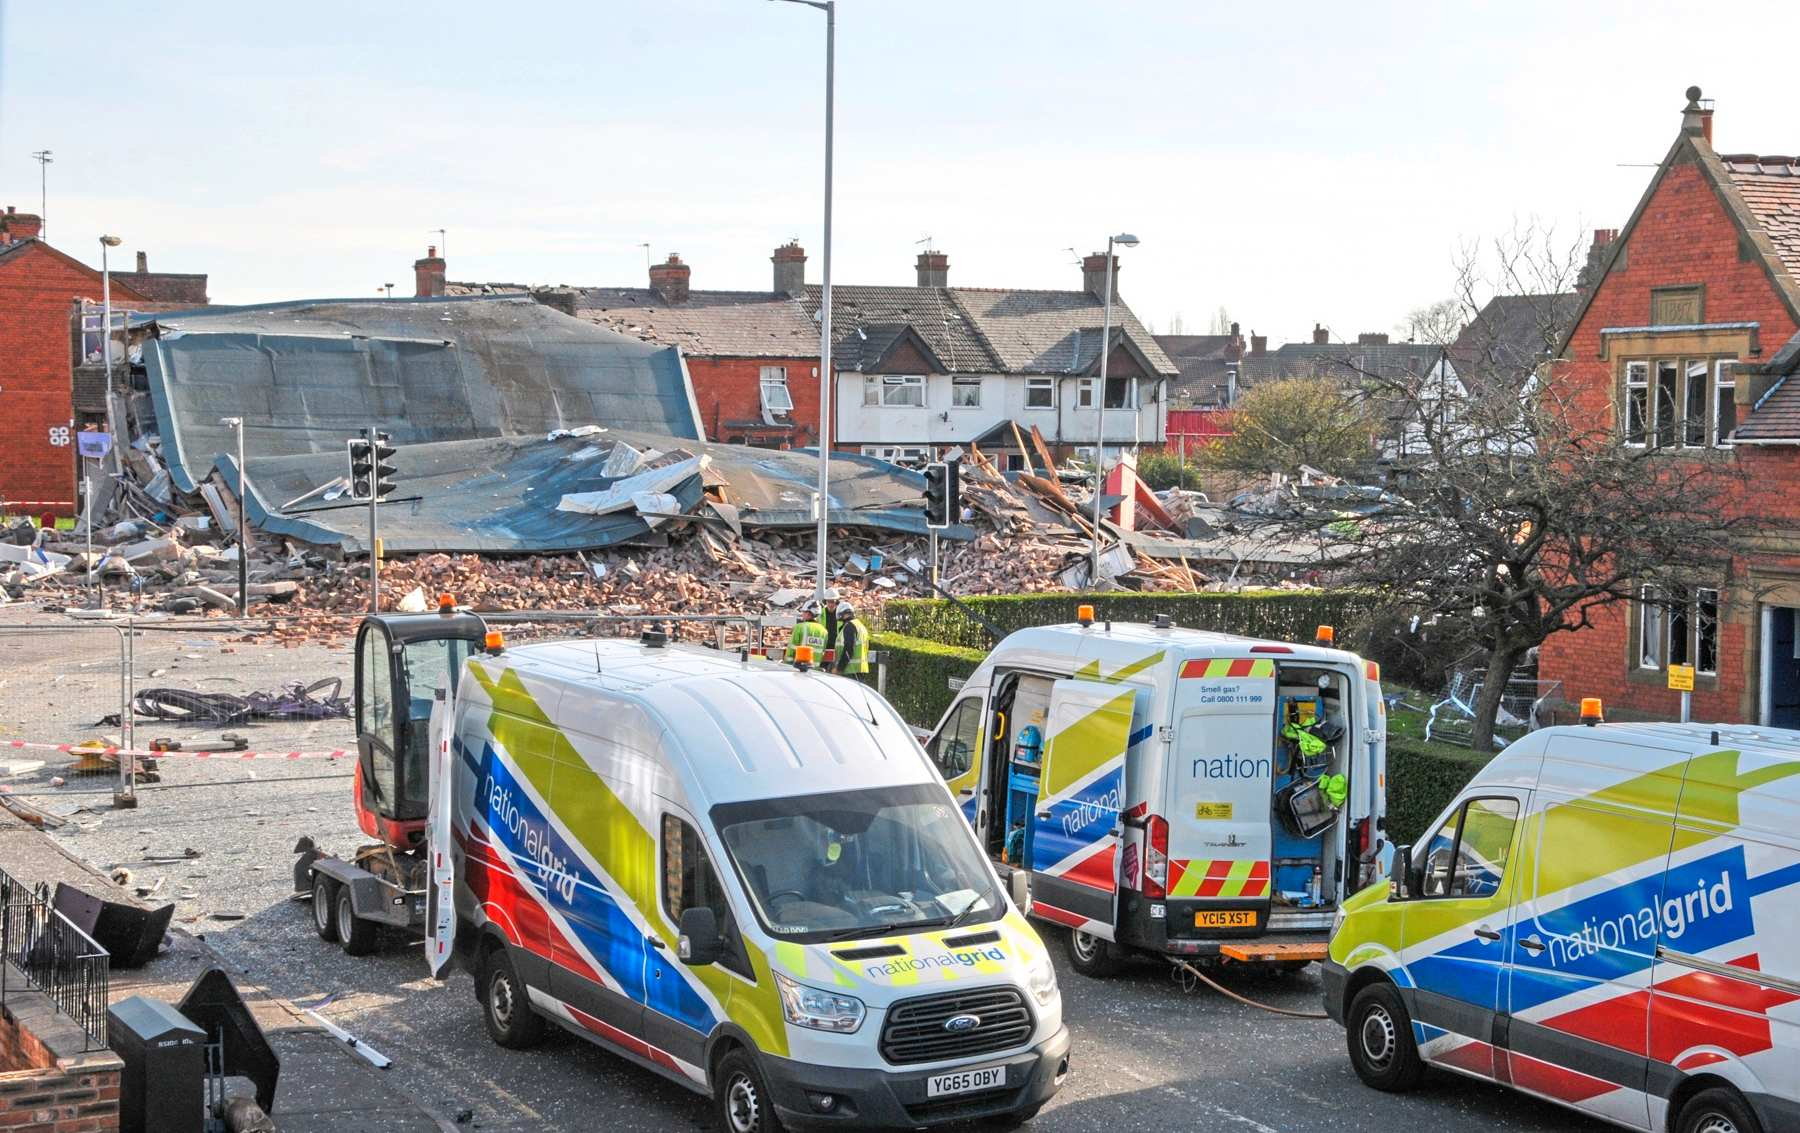 Picture of the explosion aftermath at New Ferry